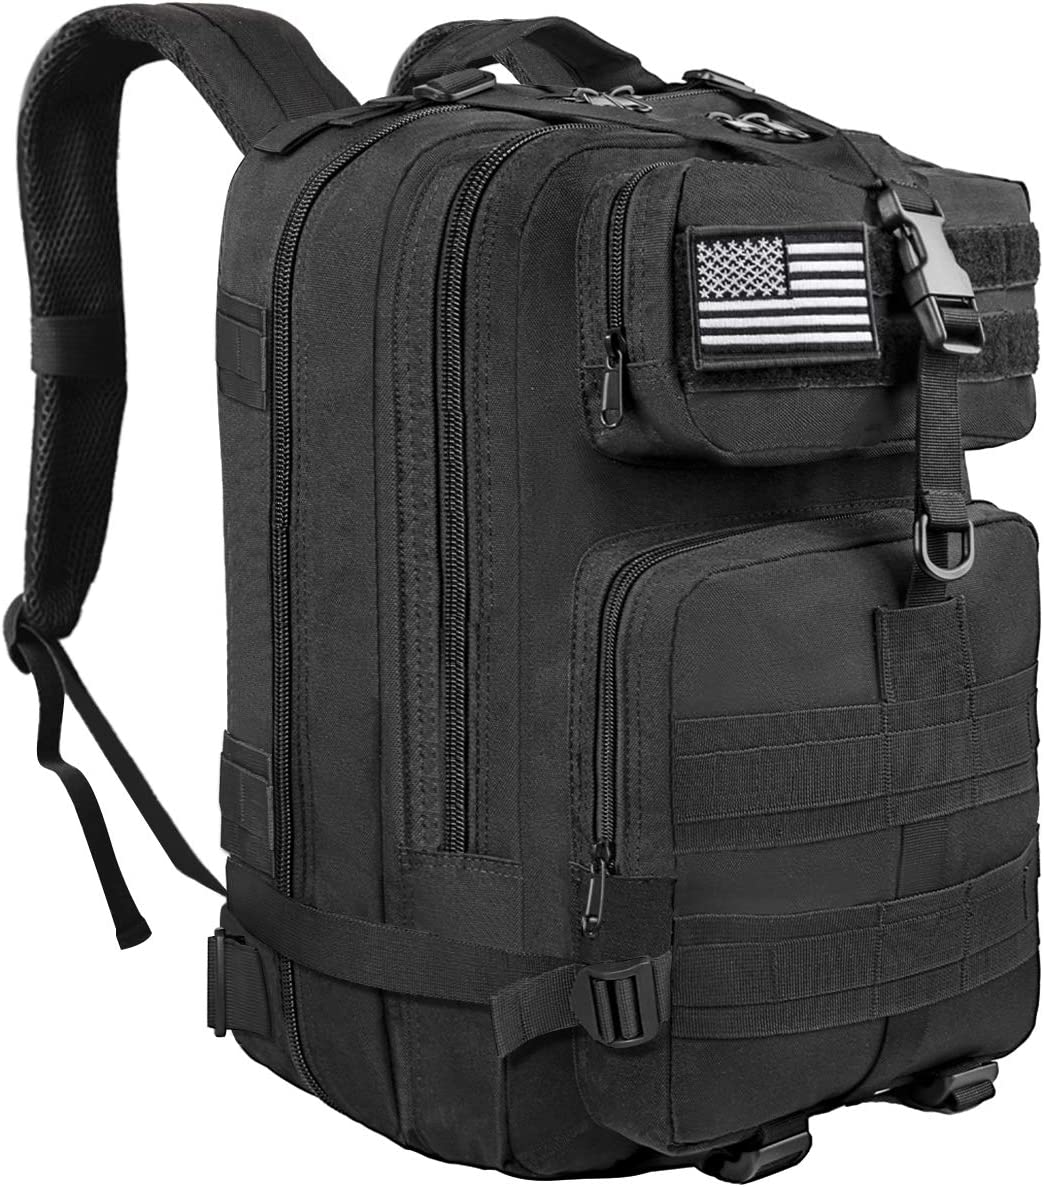 NOLA Military Tactical Backpack